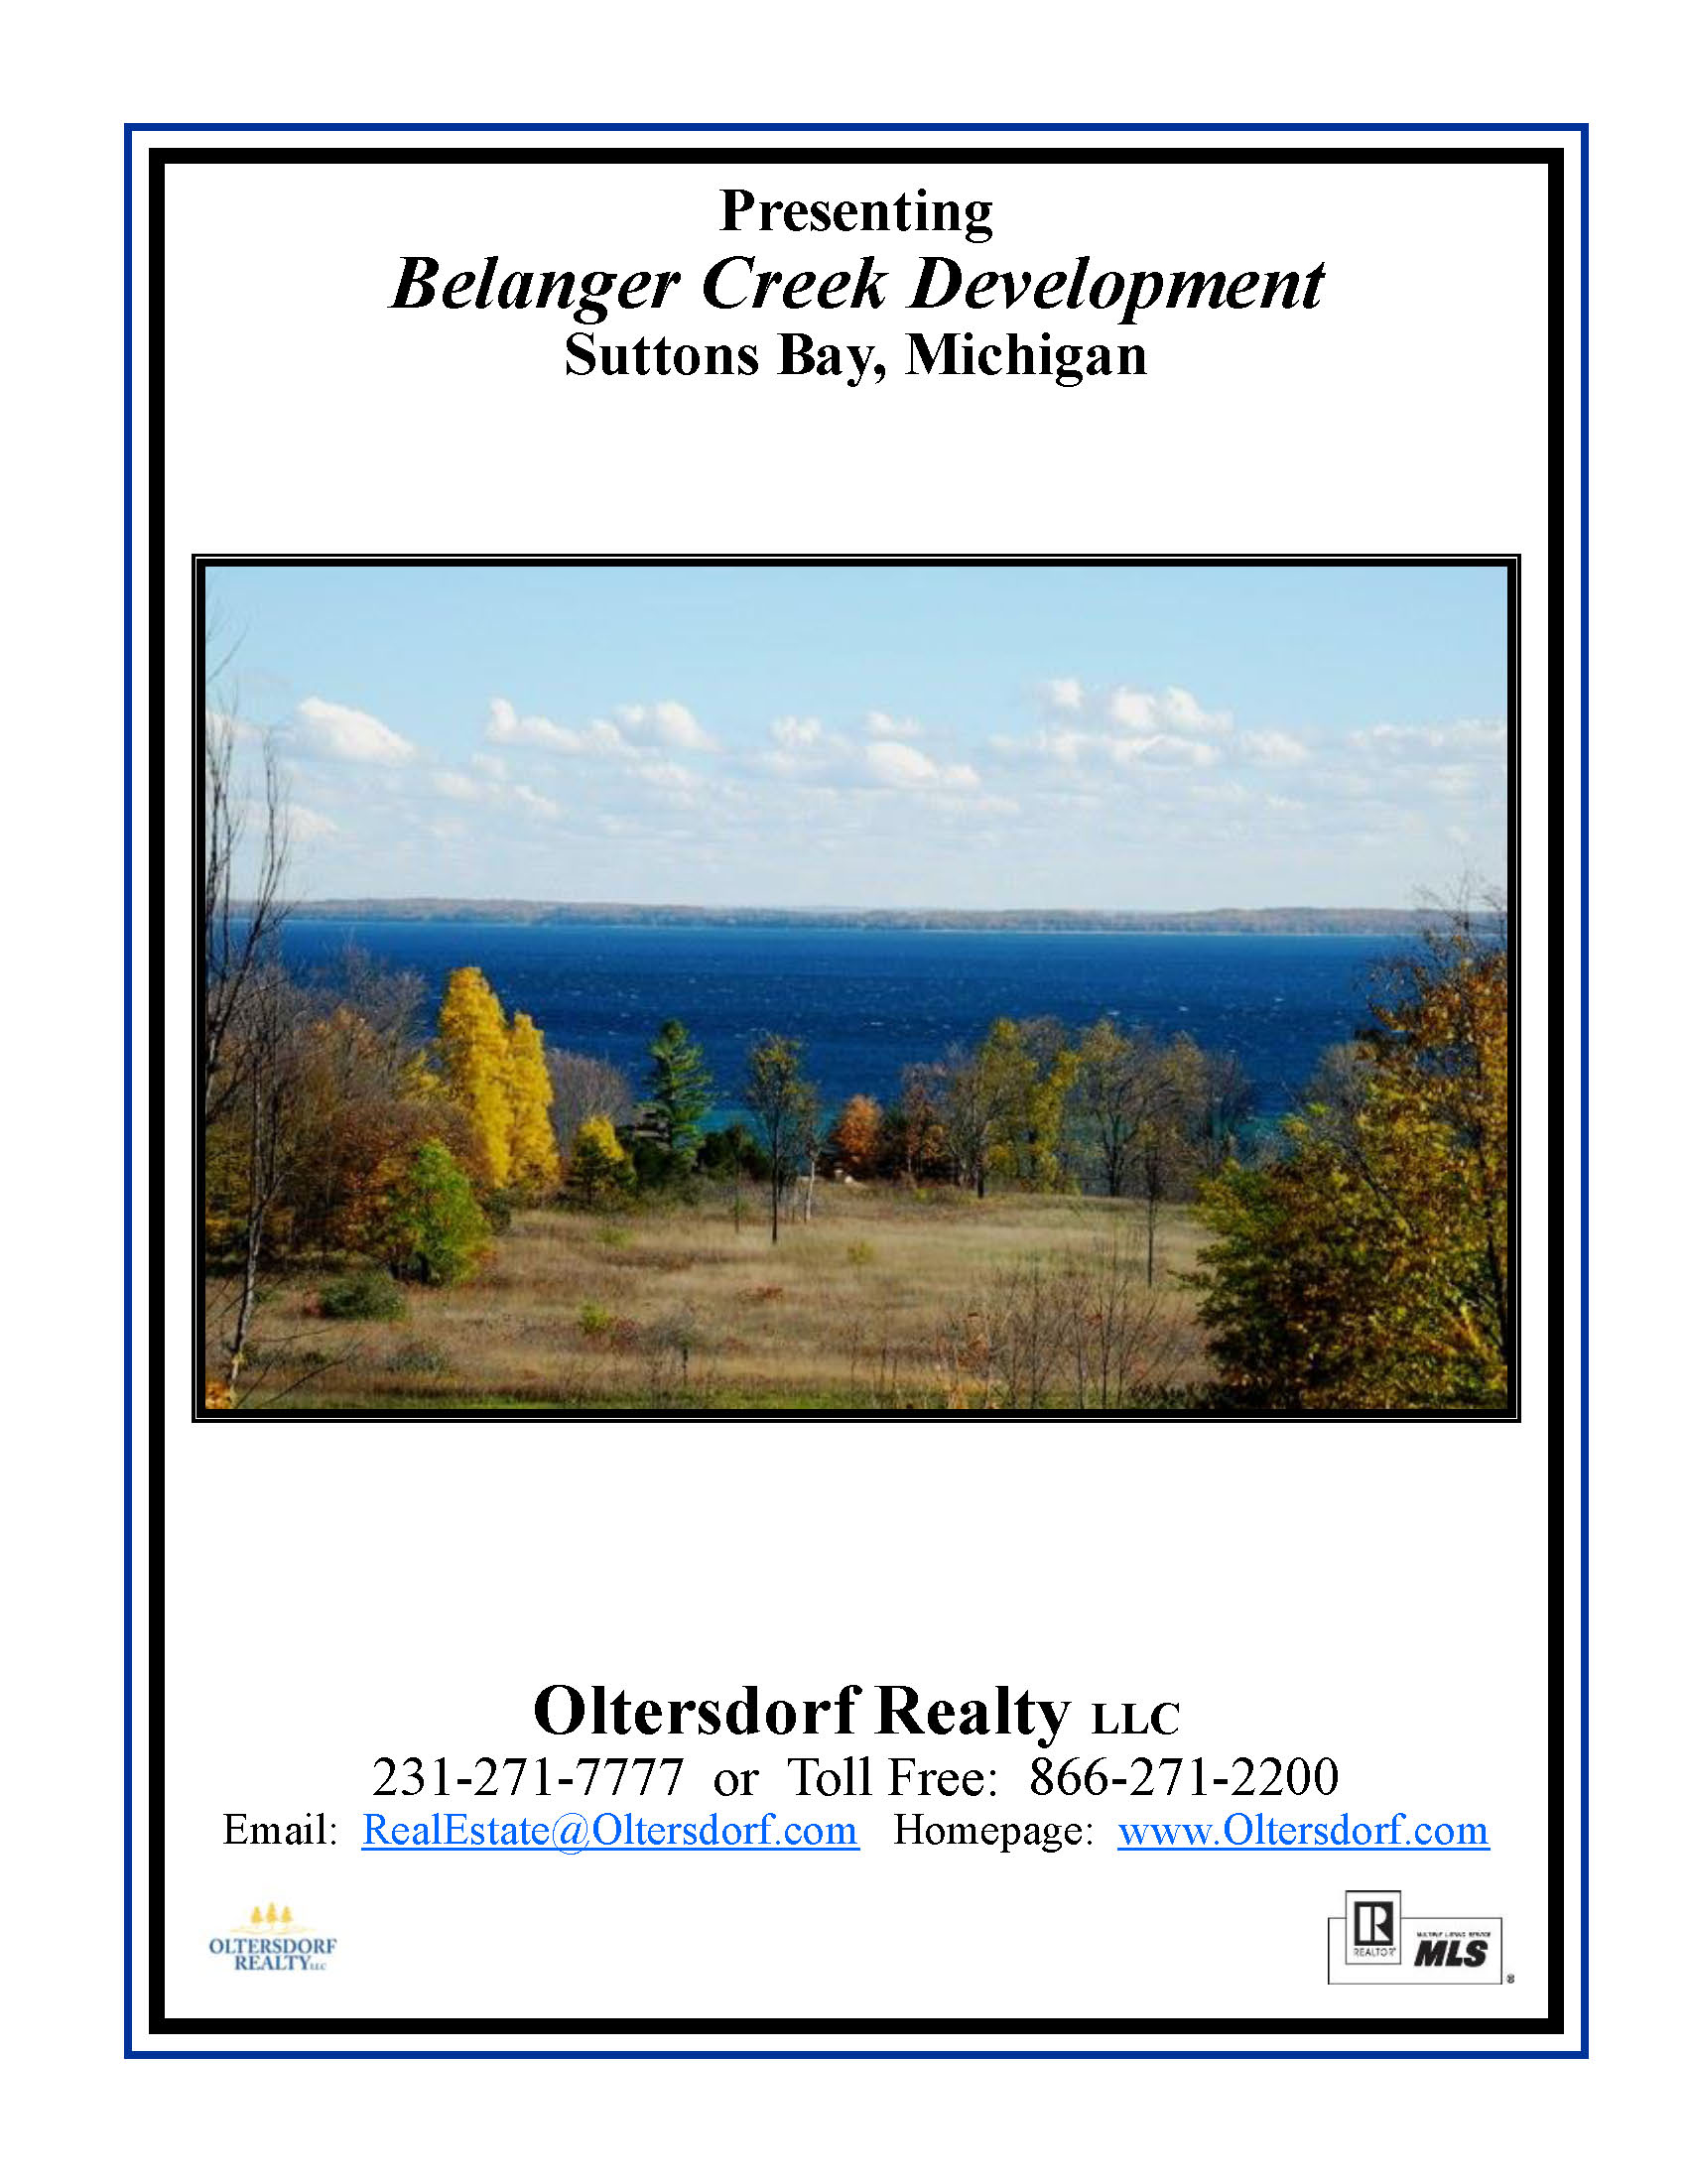 Belanger Creek, Suttons Bay Water View Vacant Land For Sale By Oltersdorf Realty LLC_Page_01.jpg